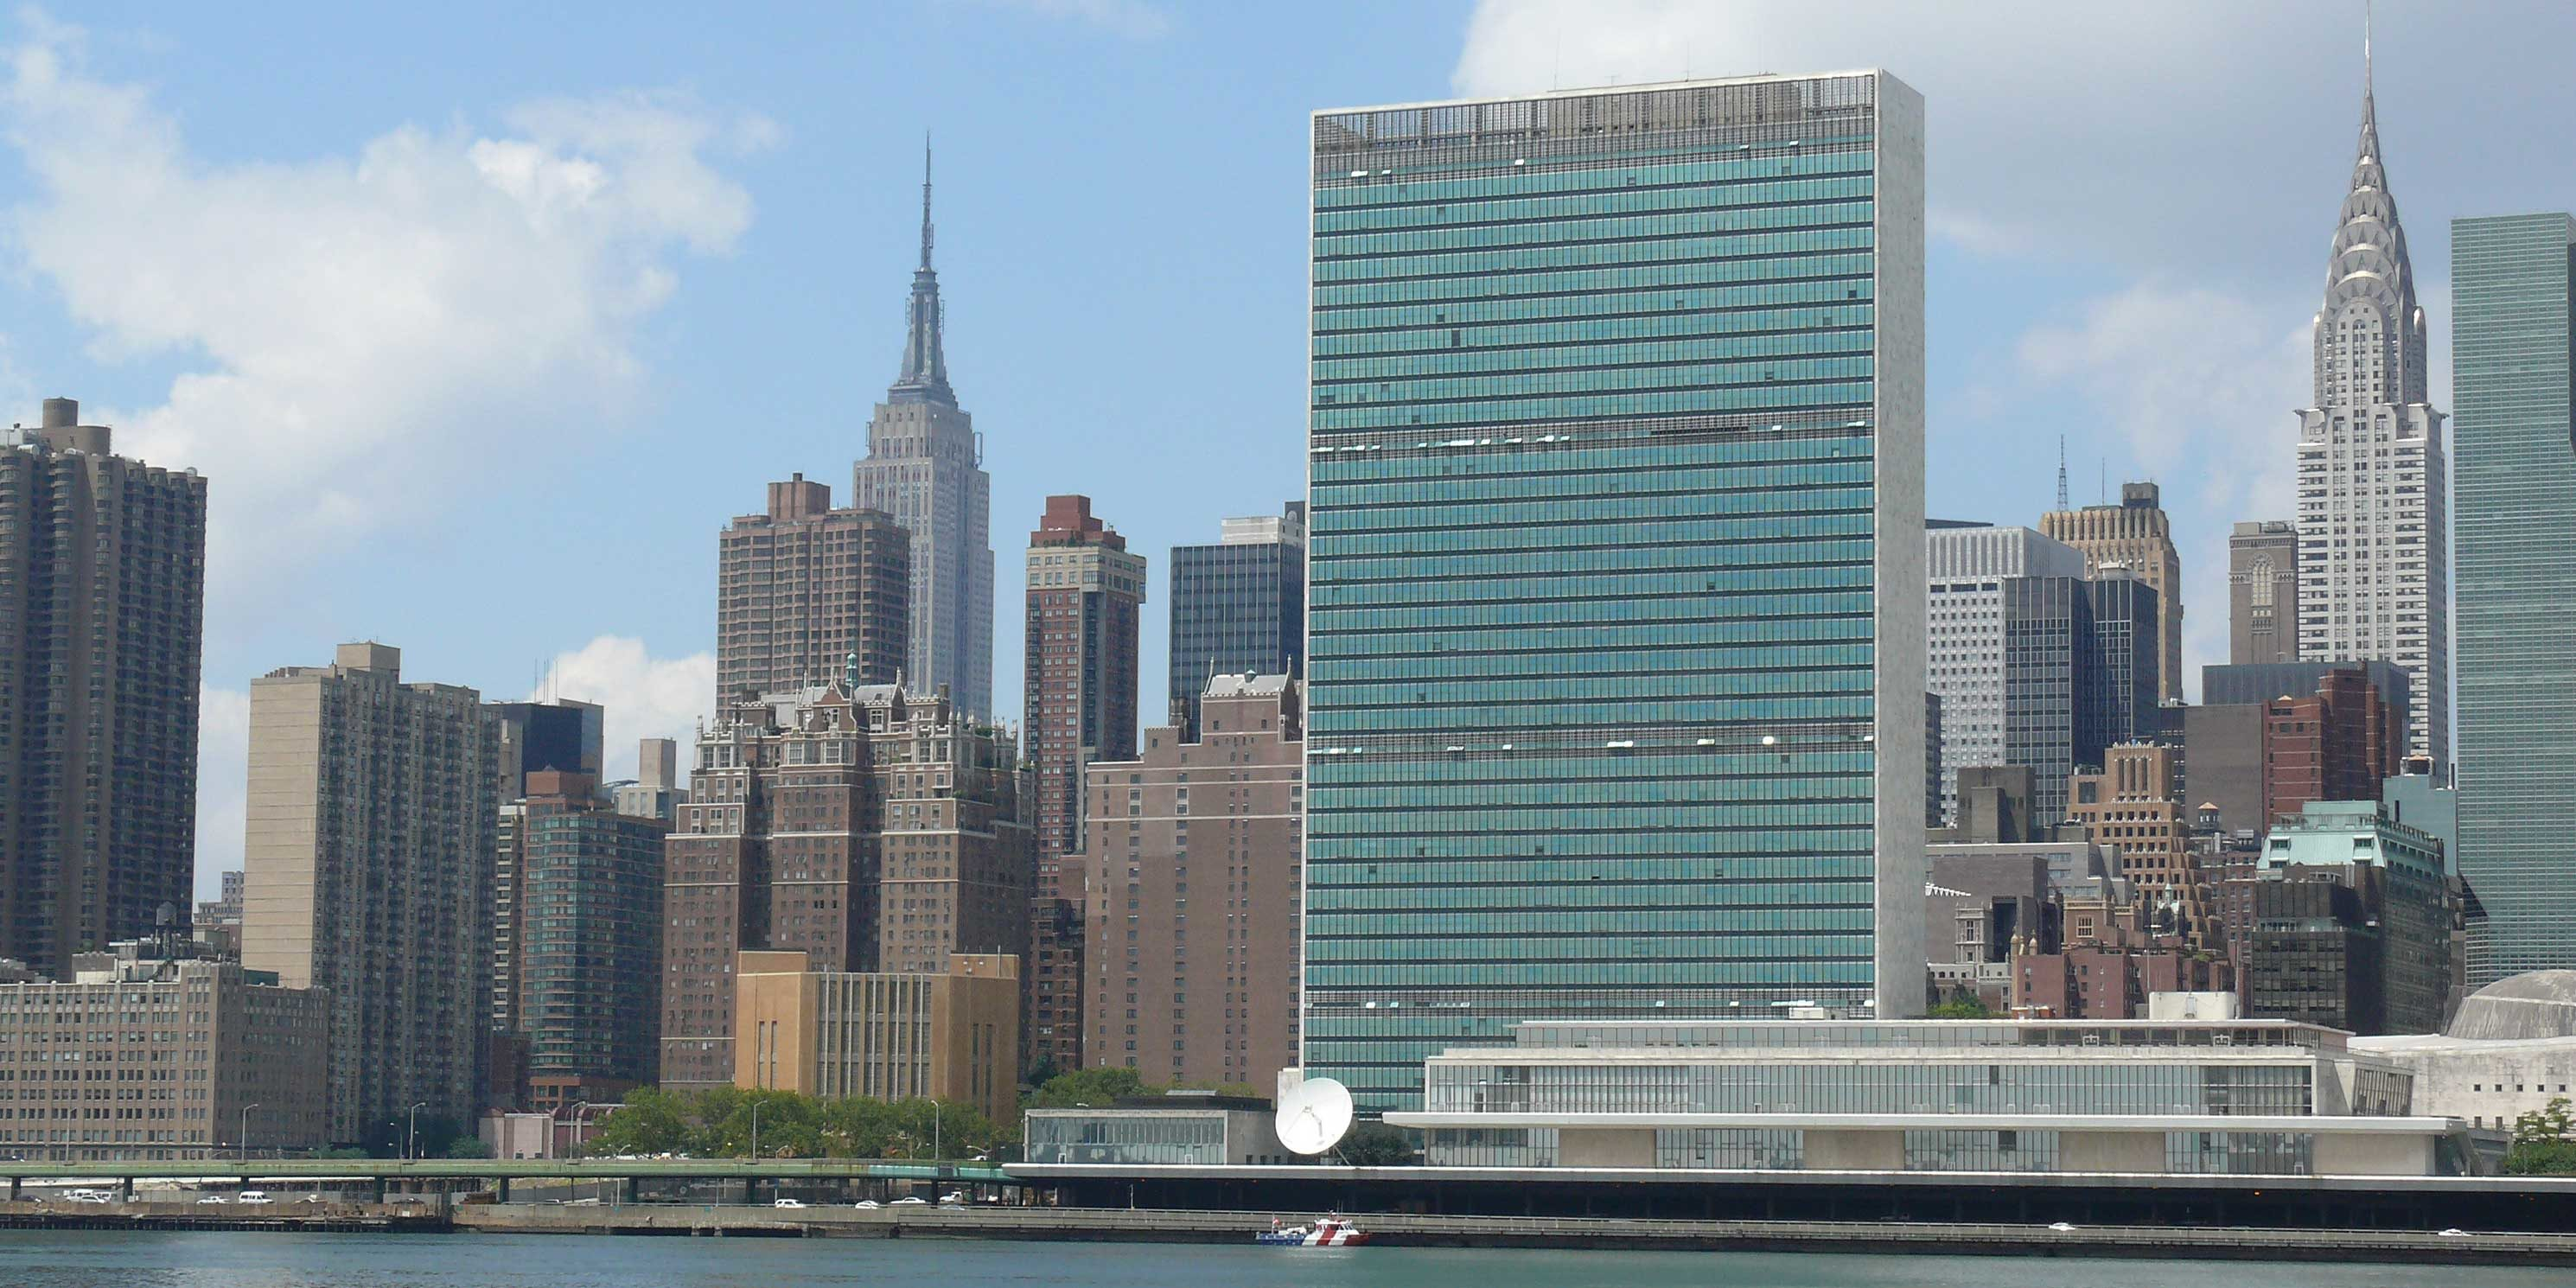 view of Manhattan with the United Nations, Empire, and Chrysler buildings in view